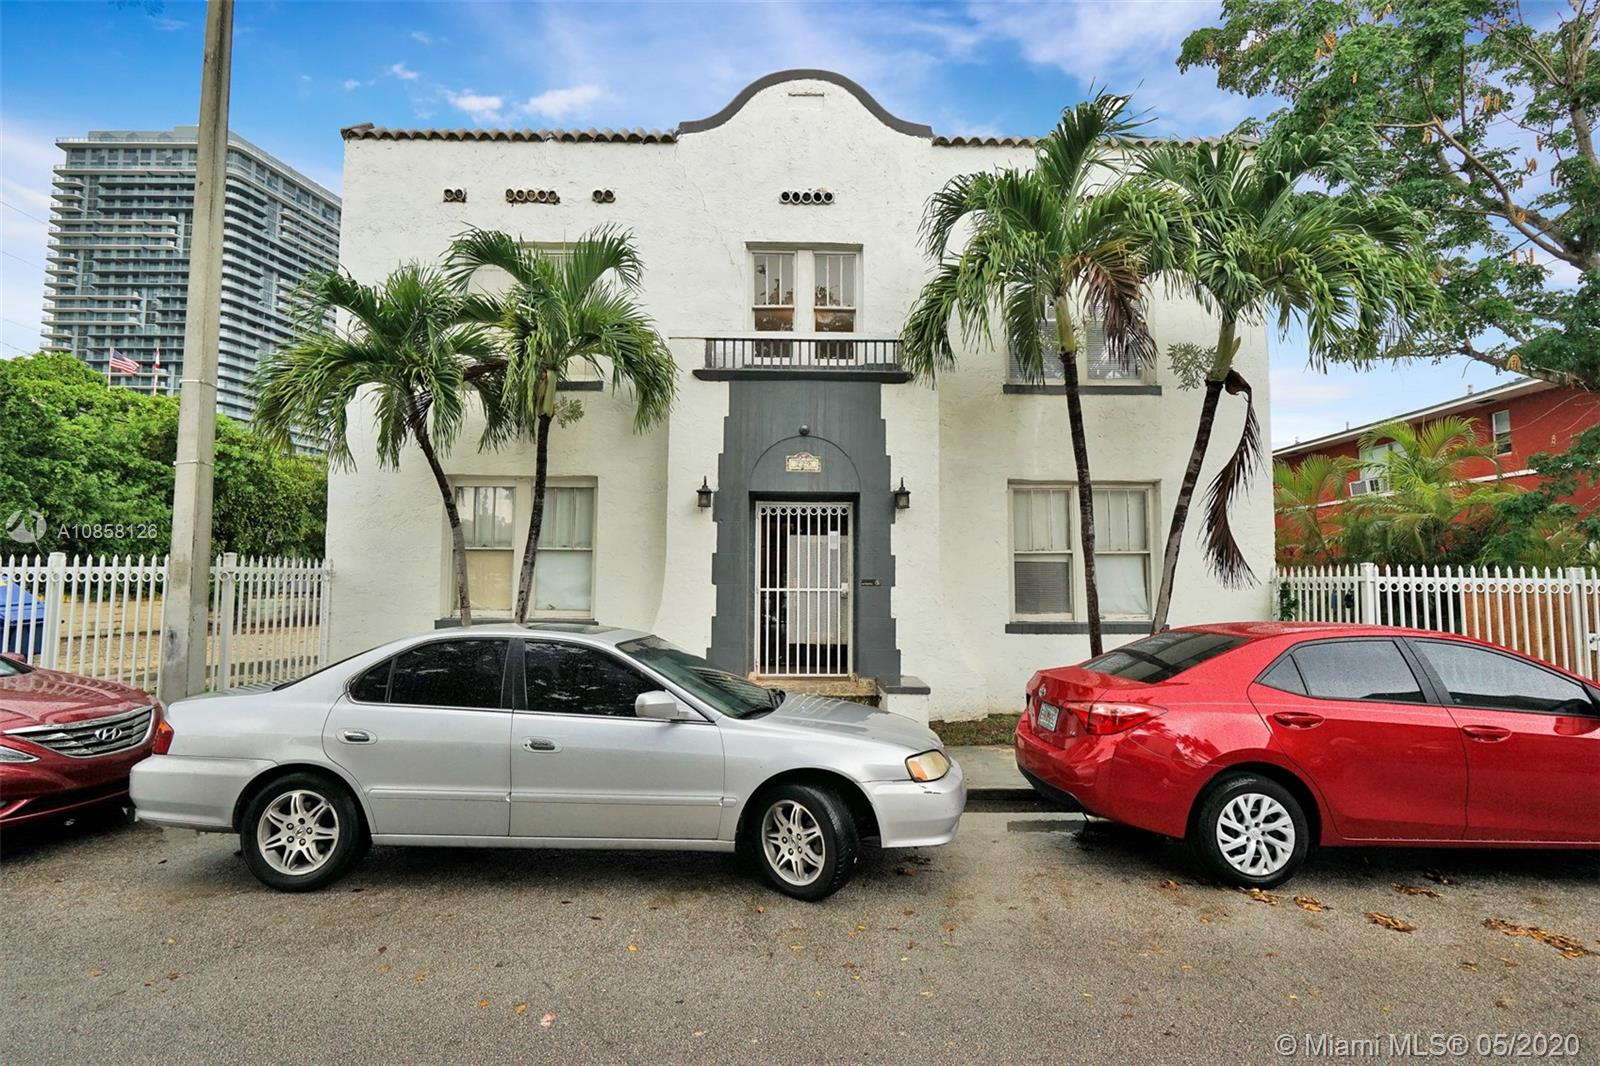 229 NE 32 STREET #3 For Sale A10858126, FL